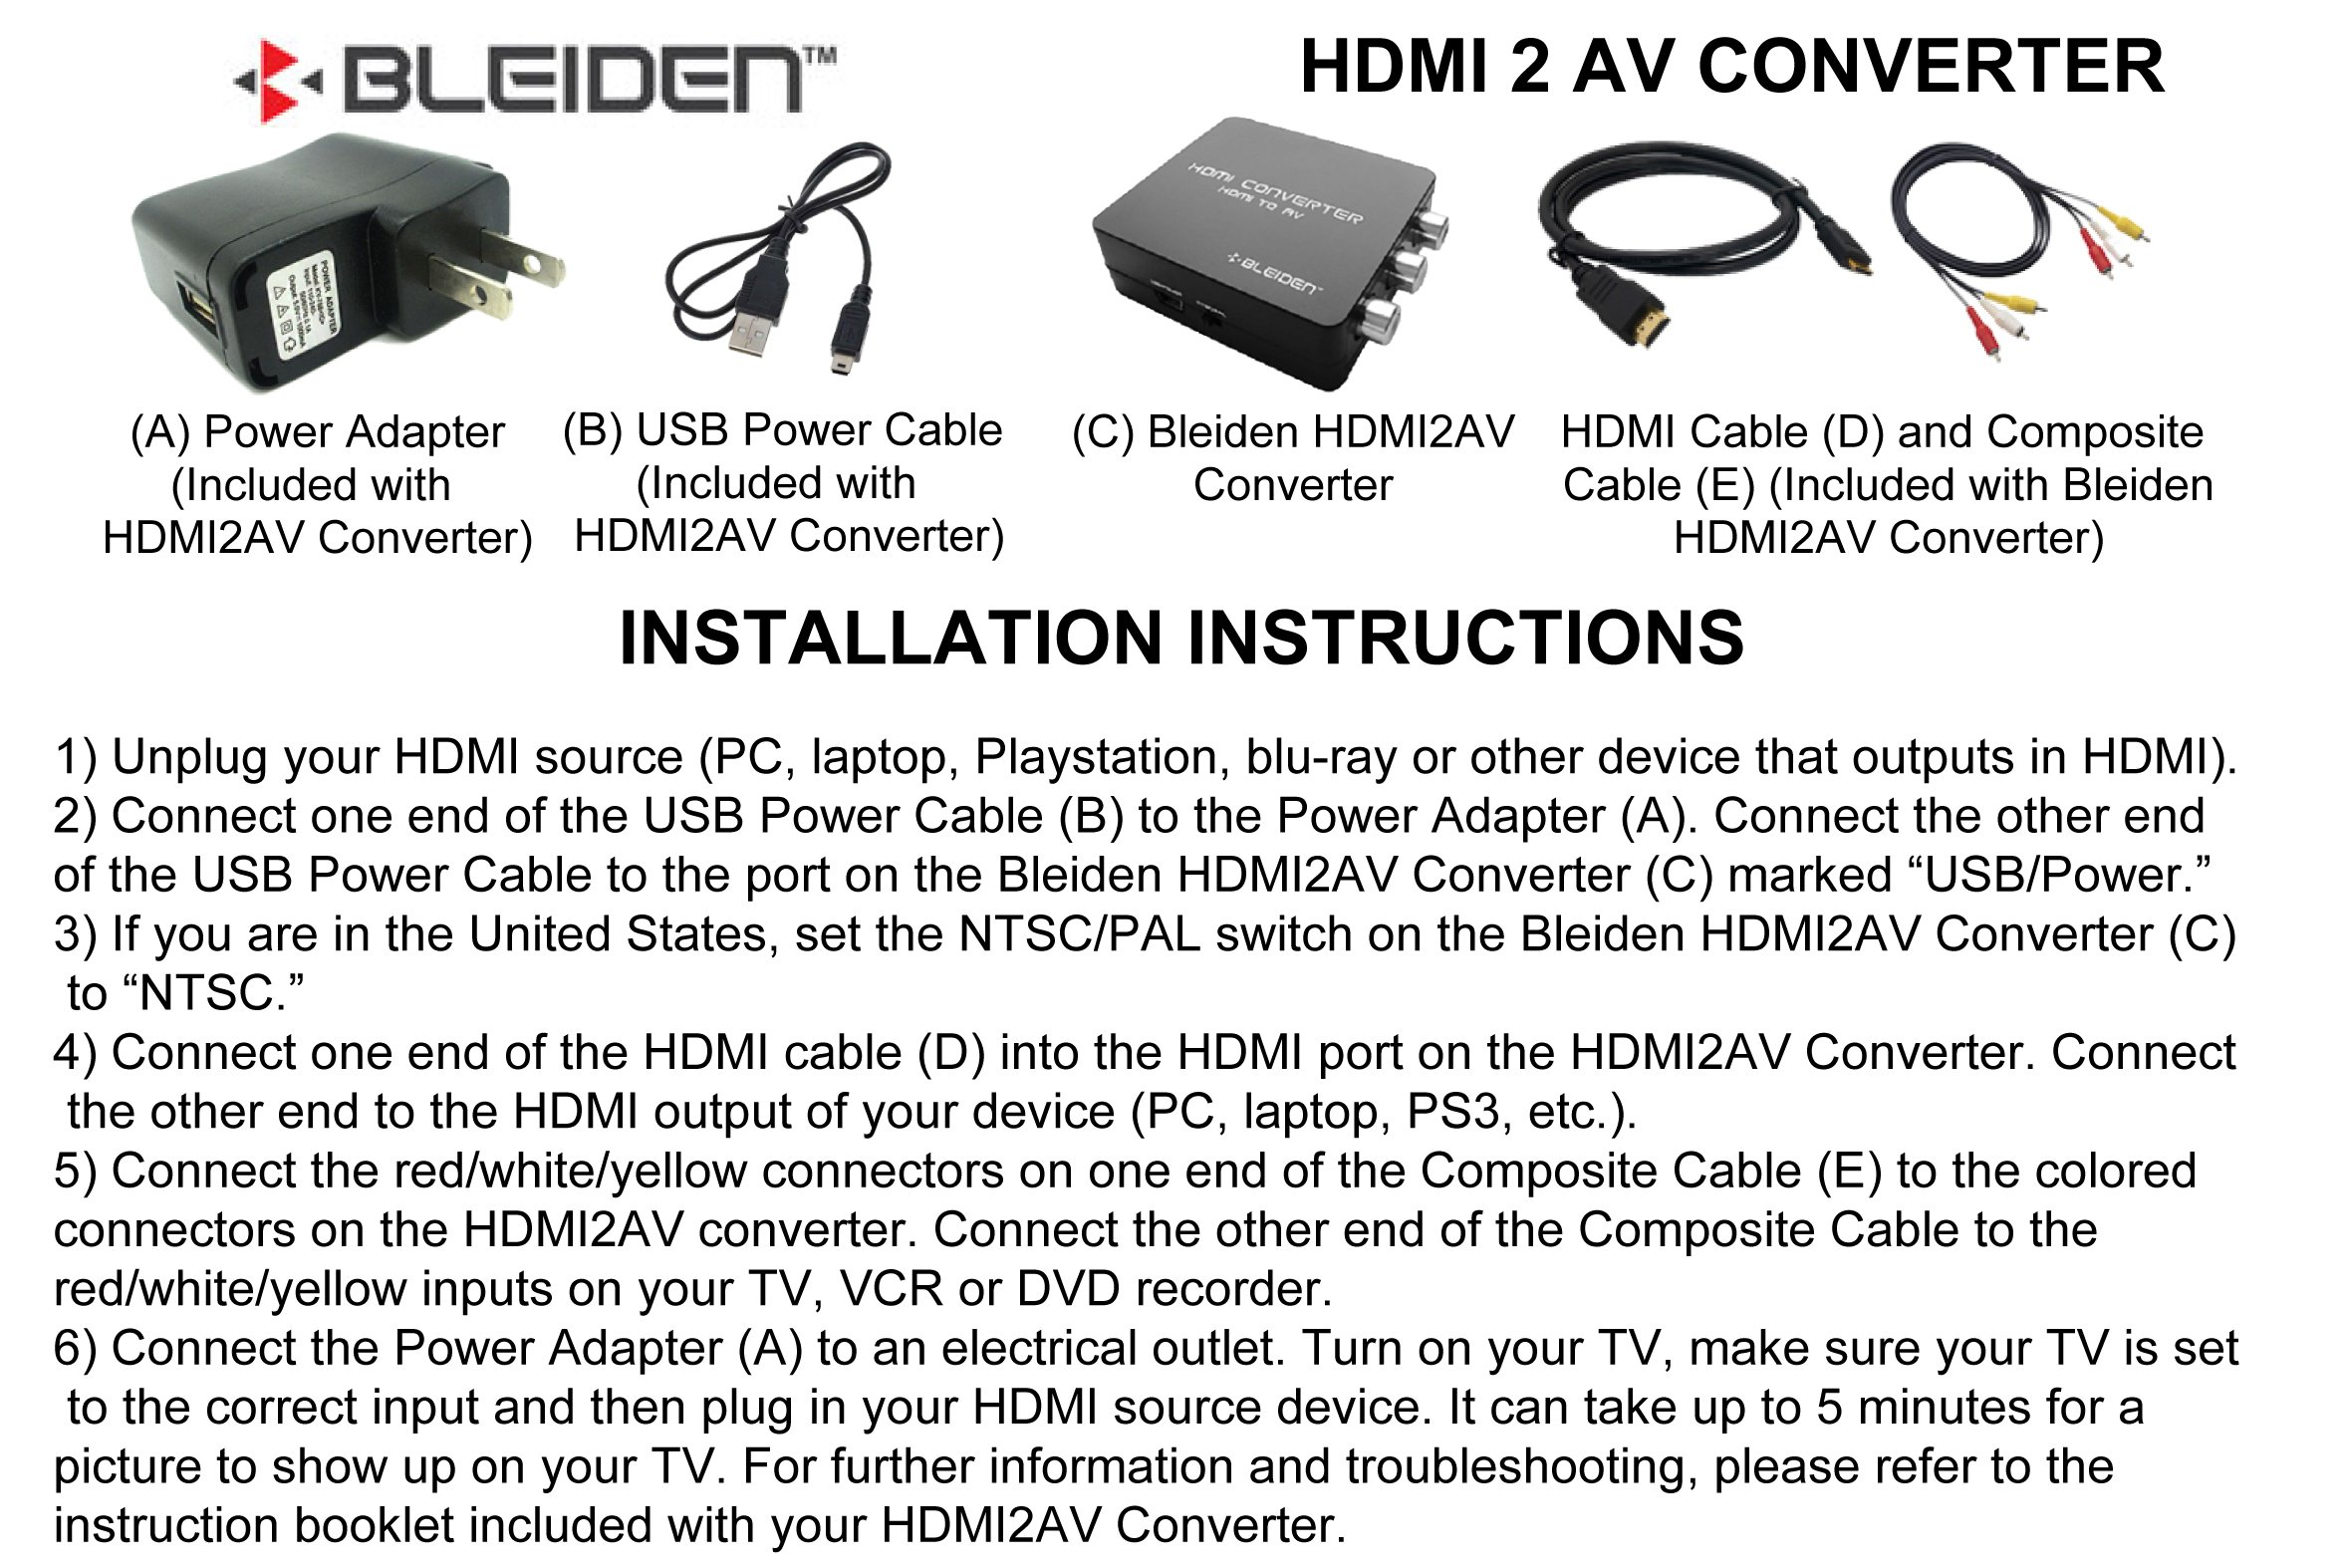 HDMI to Composite AV Converter for Laptop, Blu-Ray, NVIDIA Shield Android TV, PS4, PS3 and other HDMI Devices - Use with Old TVs that do not have HDMI input